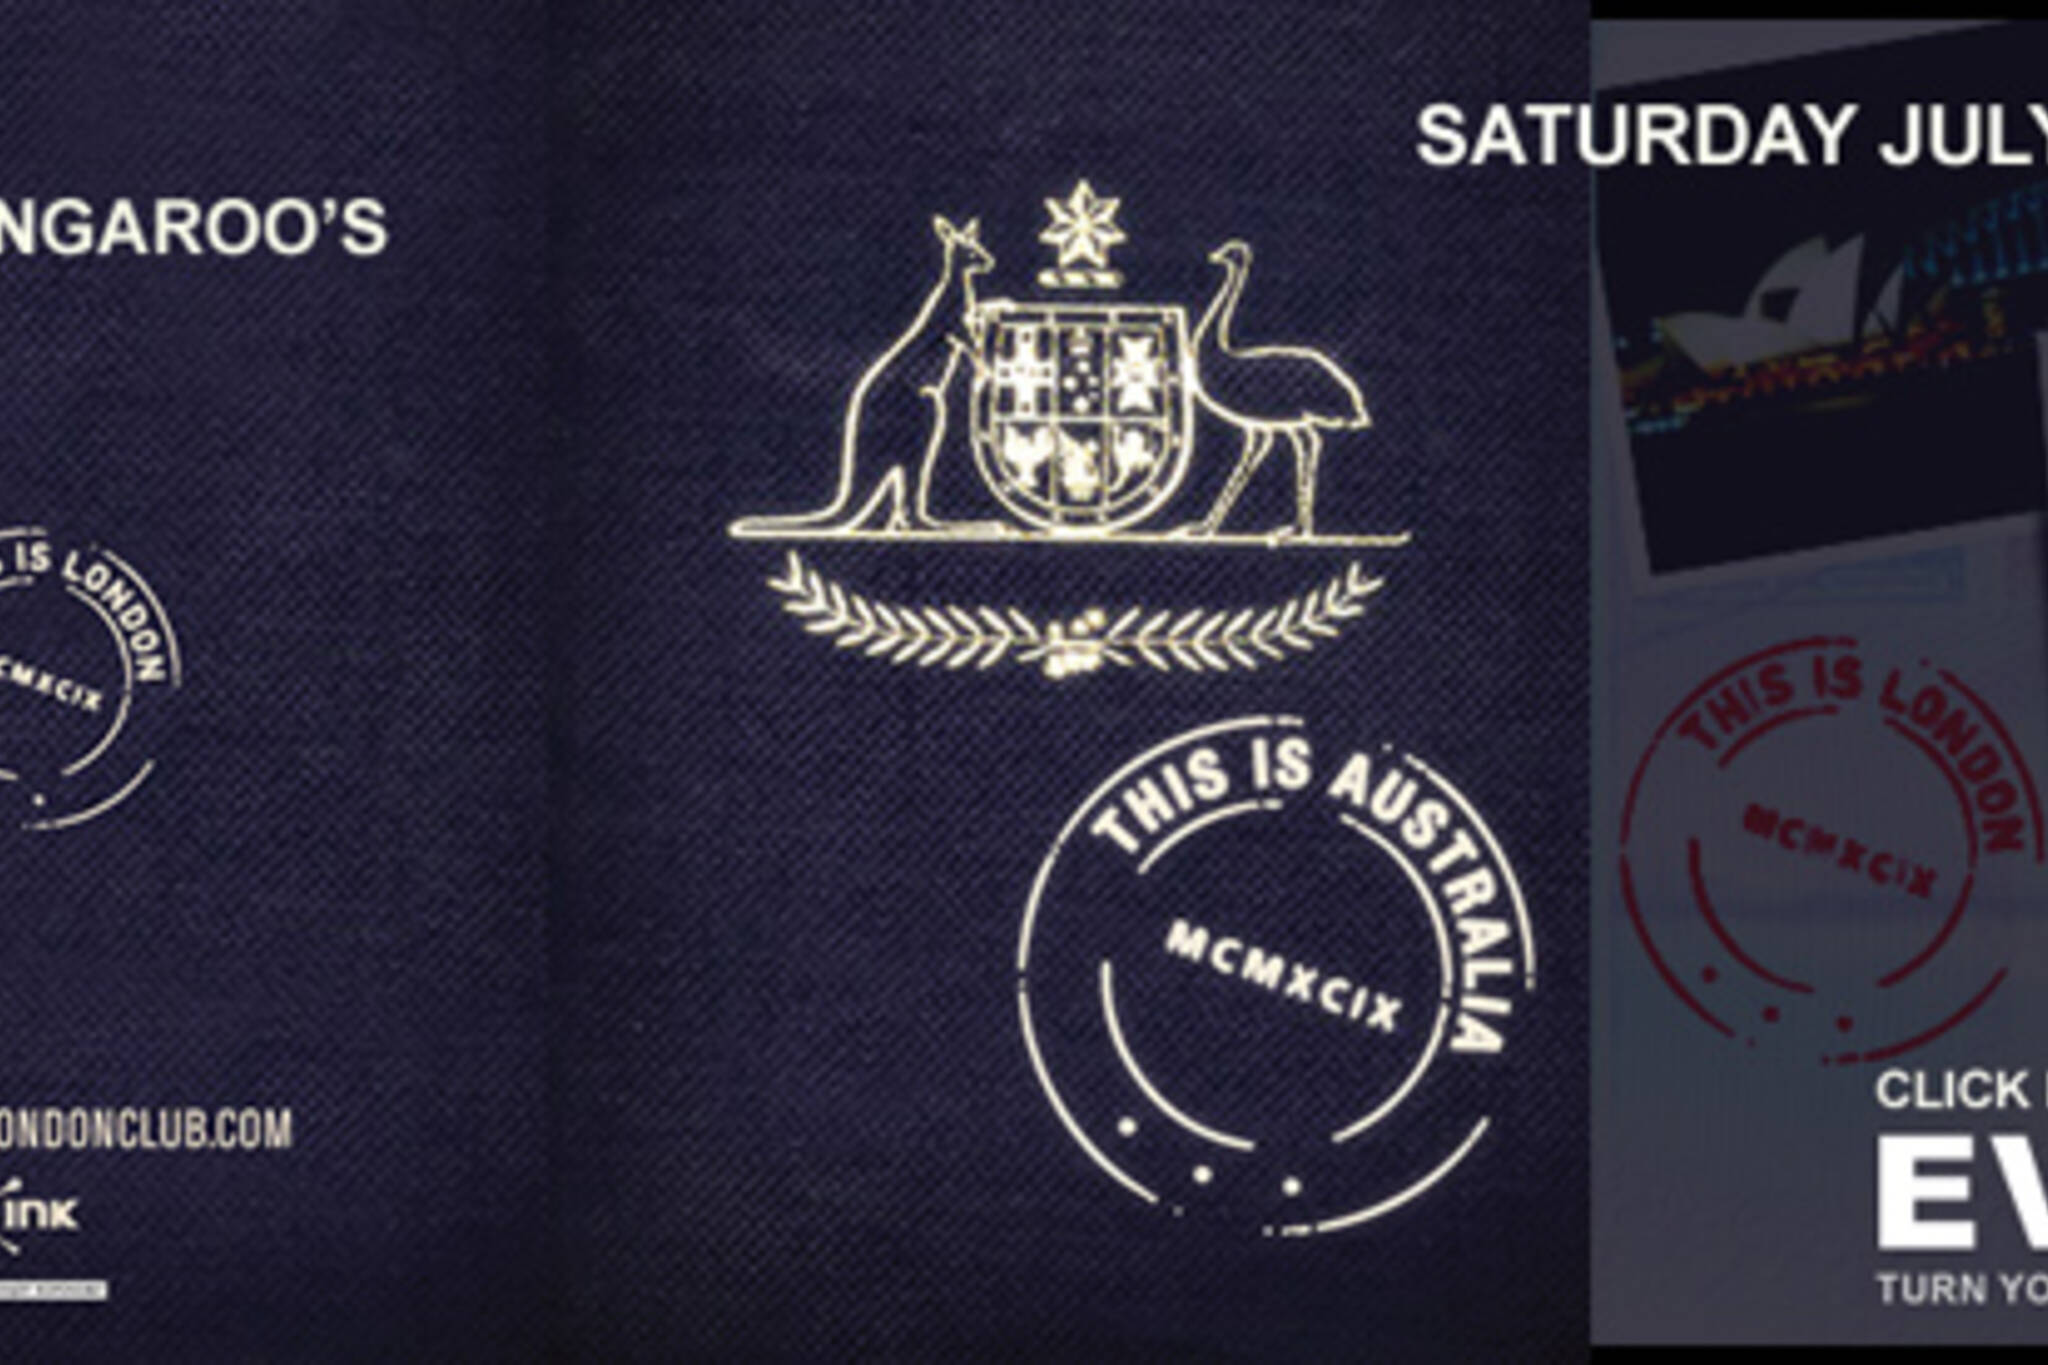 This Is Australia event eFlyer with live kangaroo announcement